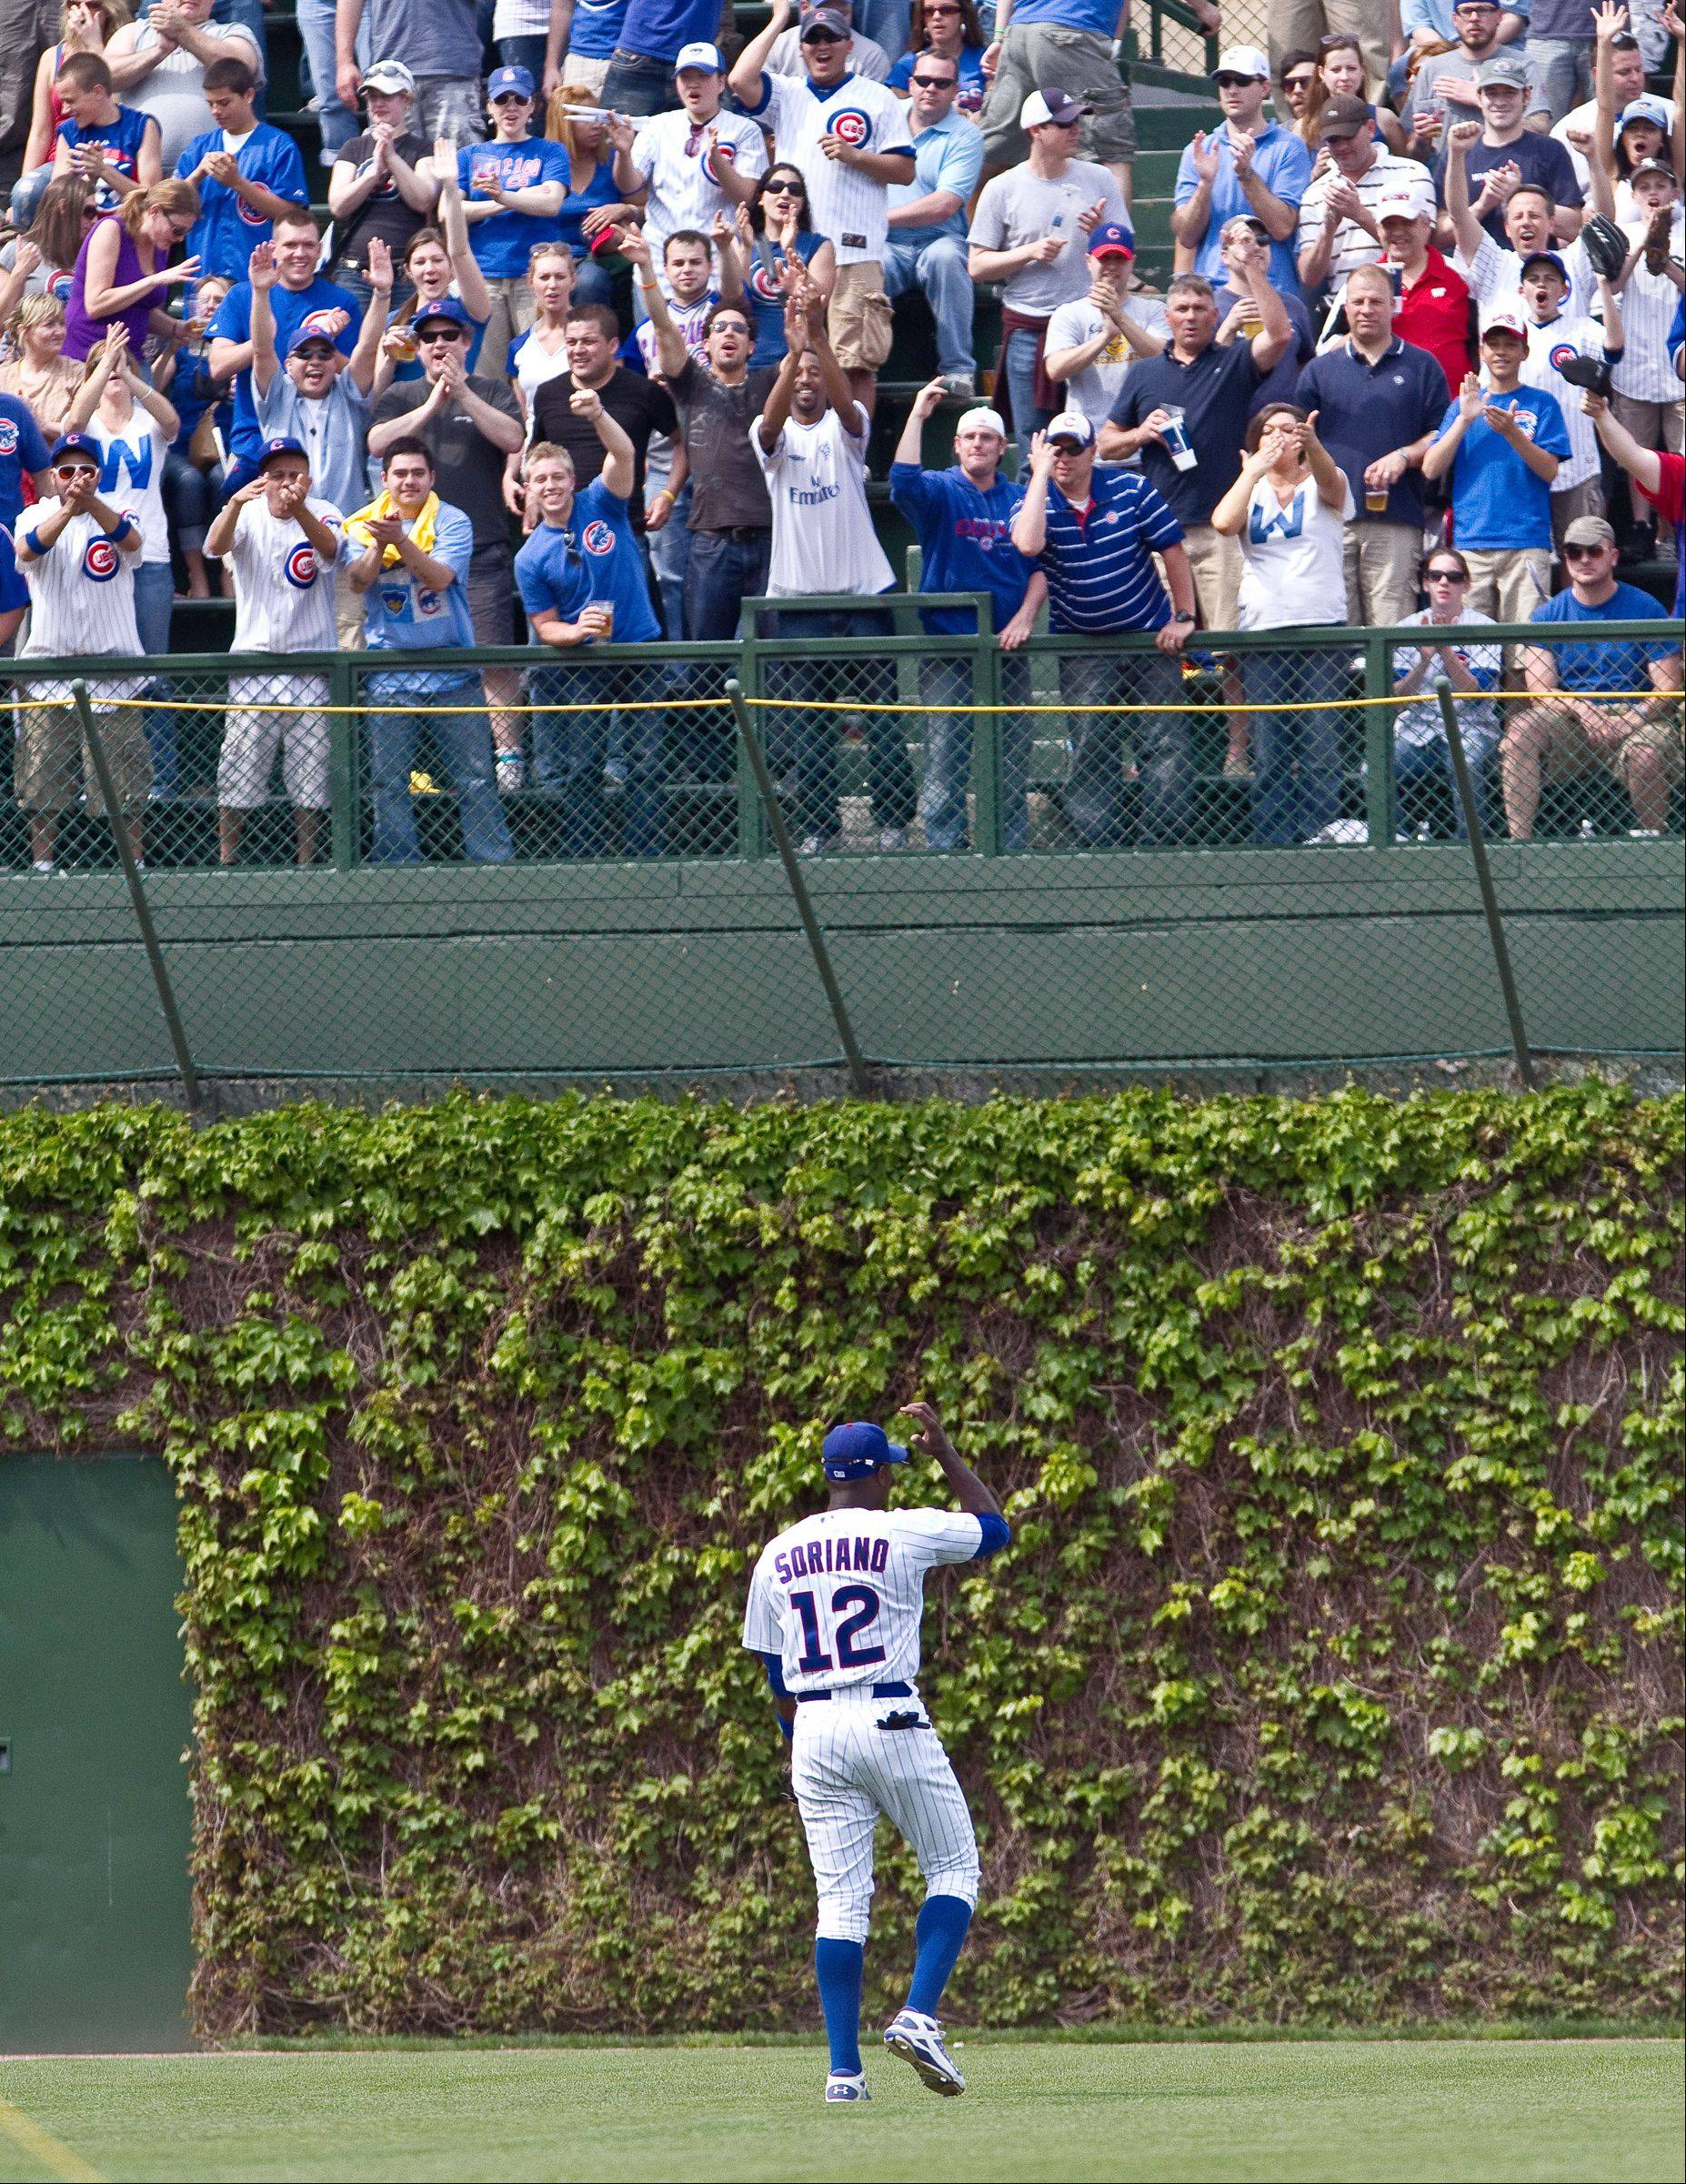 Alfonso Soriano acknowledges the cheering crowd in the left field bleachers as he takes his position during a game against Arizona in 2010. Soriano�s outfield play improved greatly in 2012 once he began to respect the Cubs� new coaching staff.